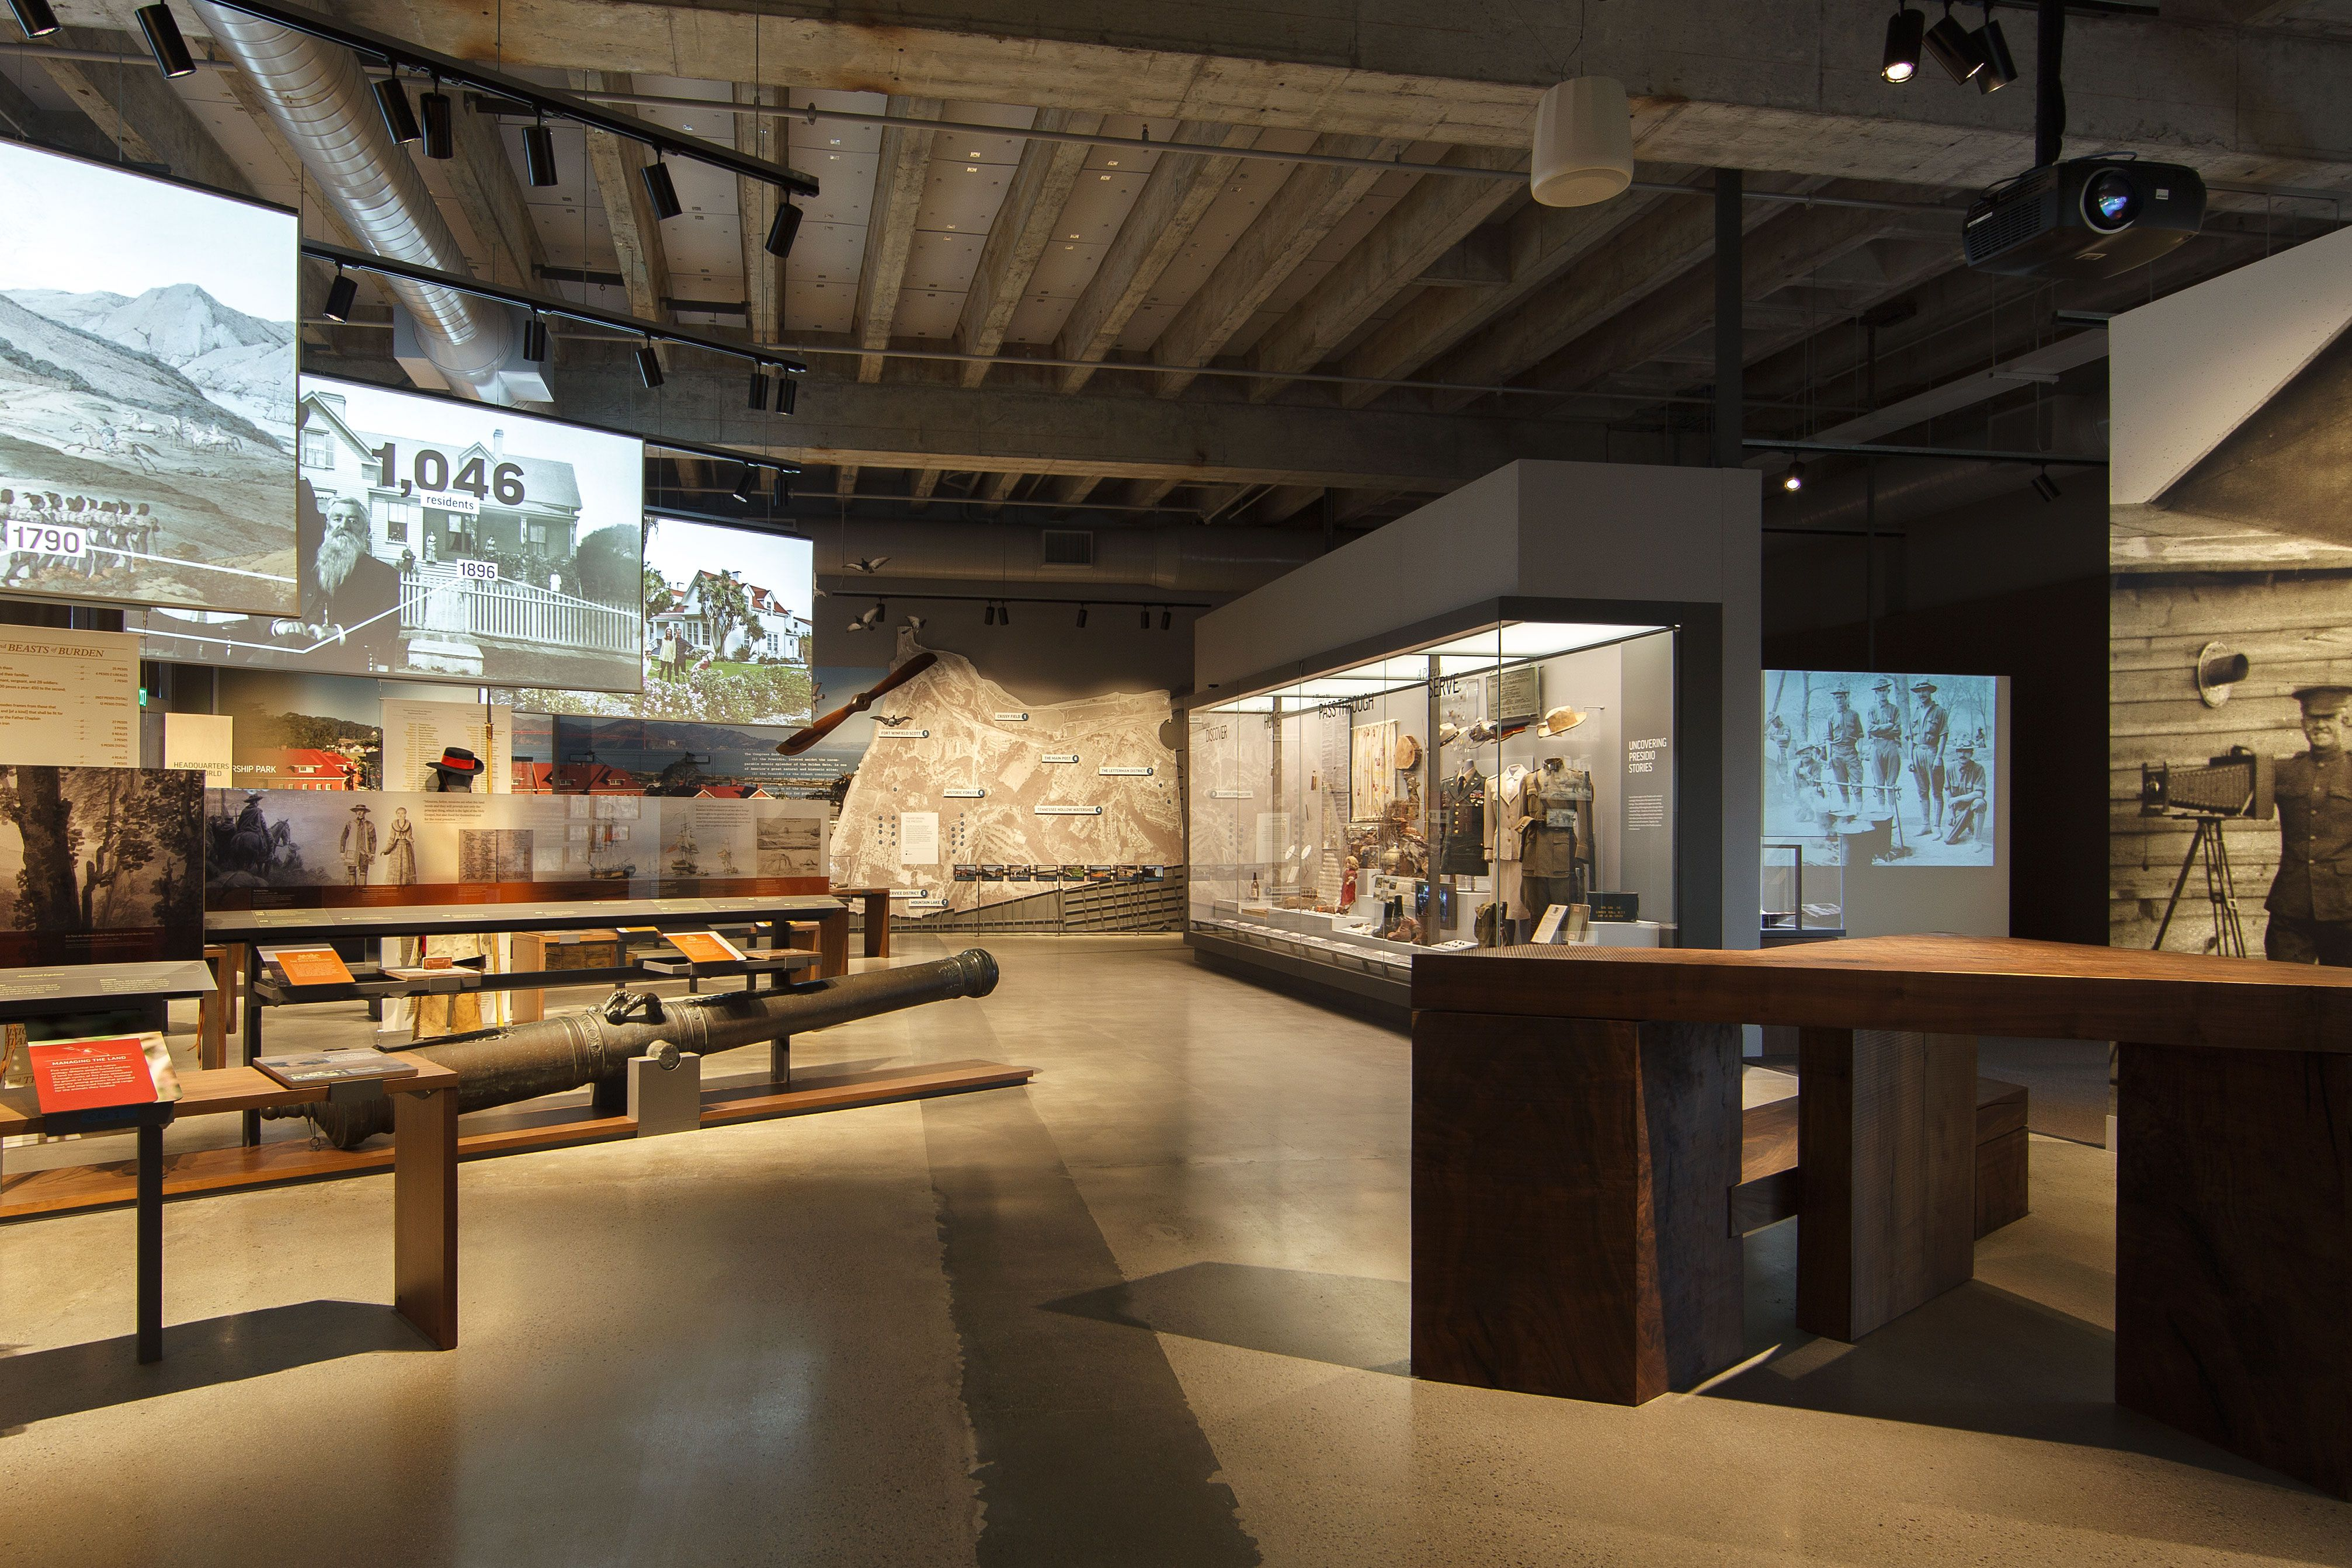 AK3W6208 | exhibit design | Pinterest | Exhibitions, Museums and ...